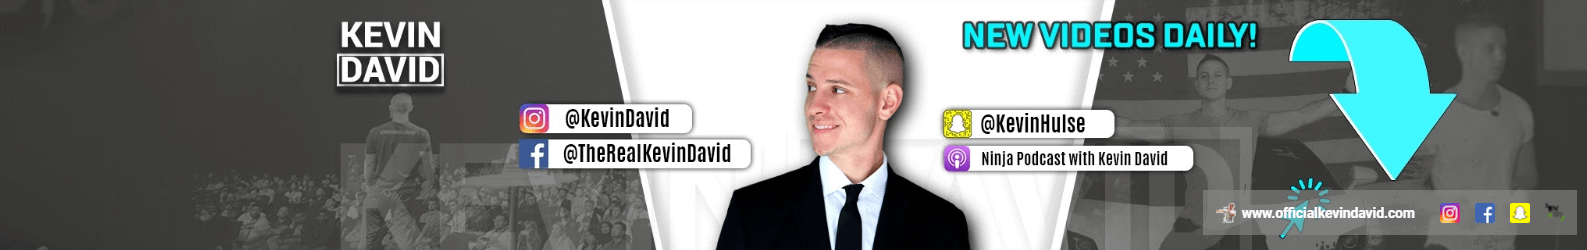 Kevin David YouTube Banner